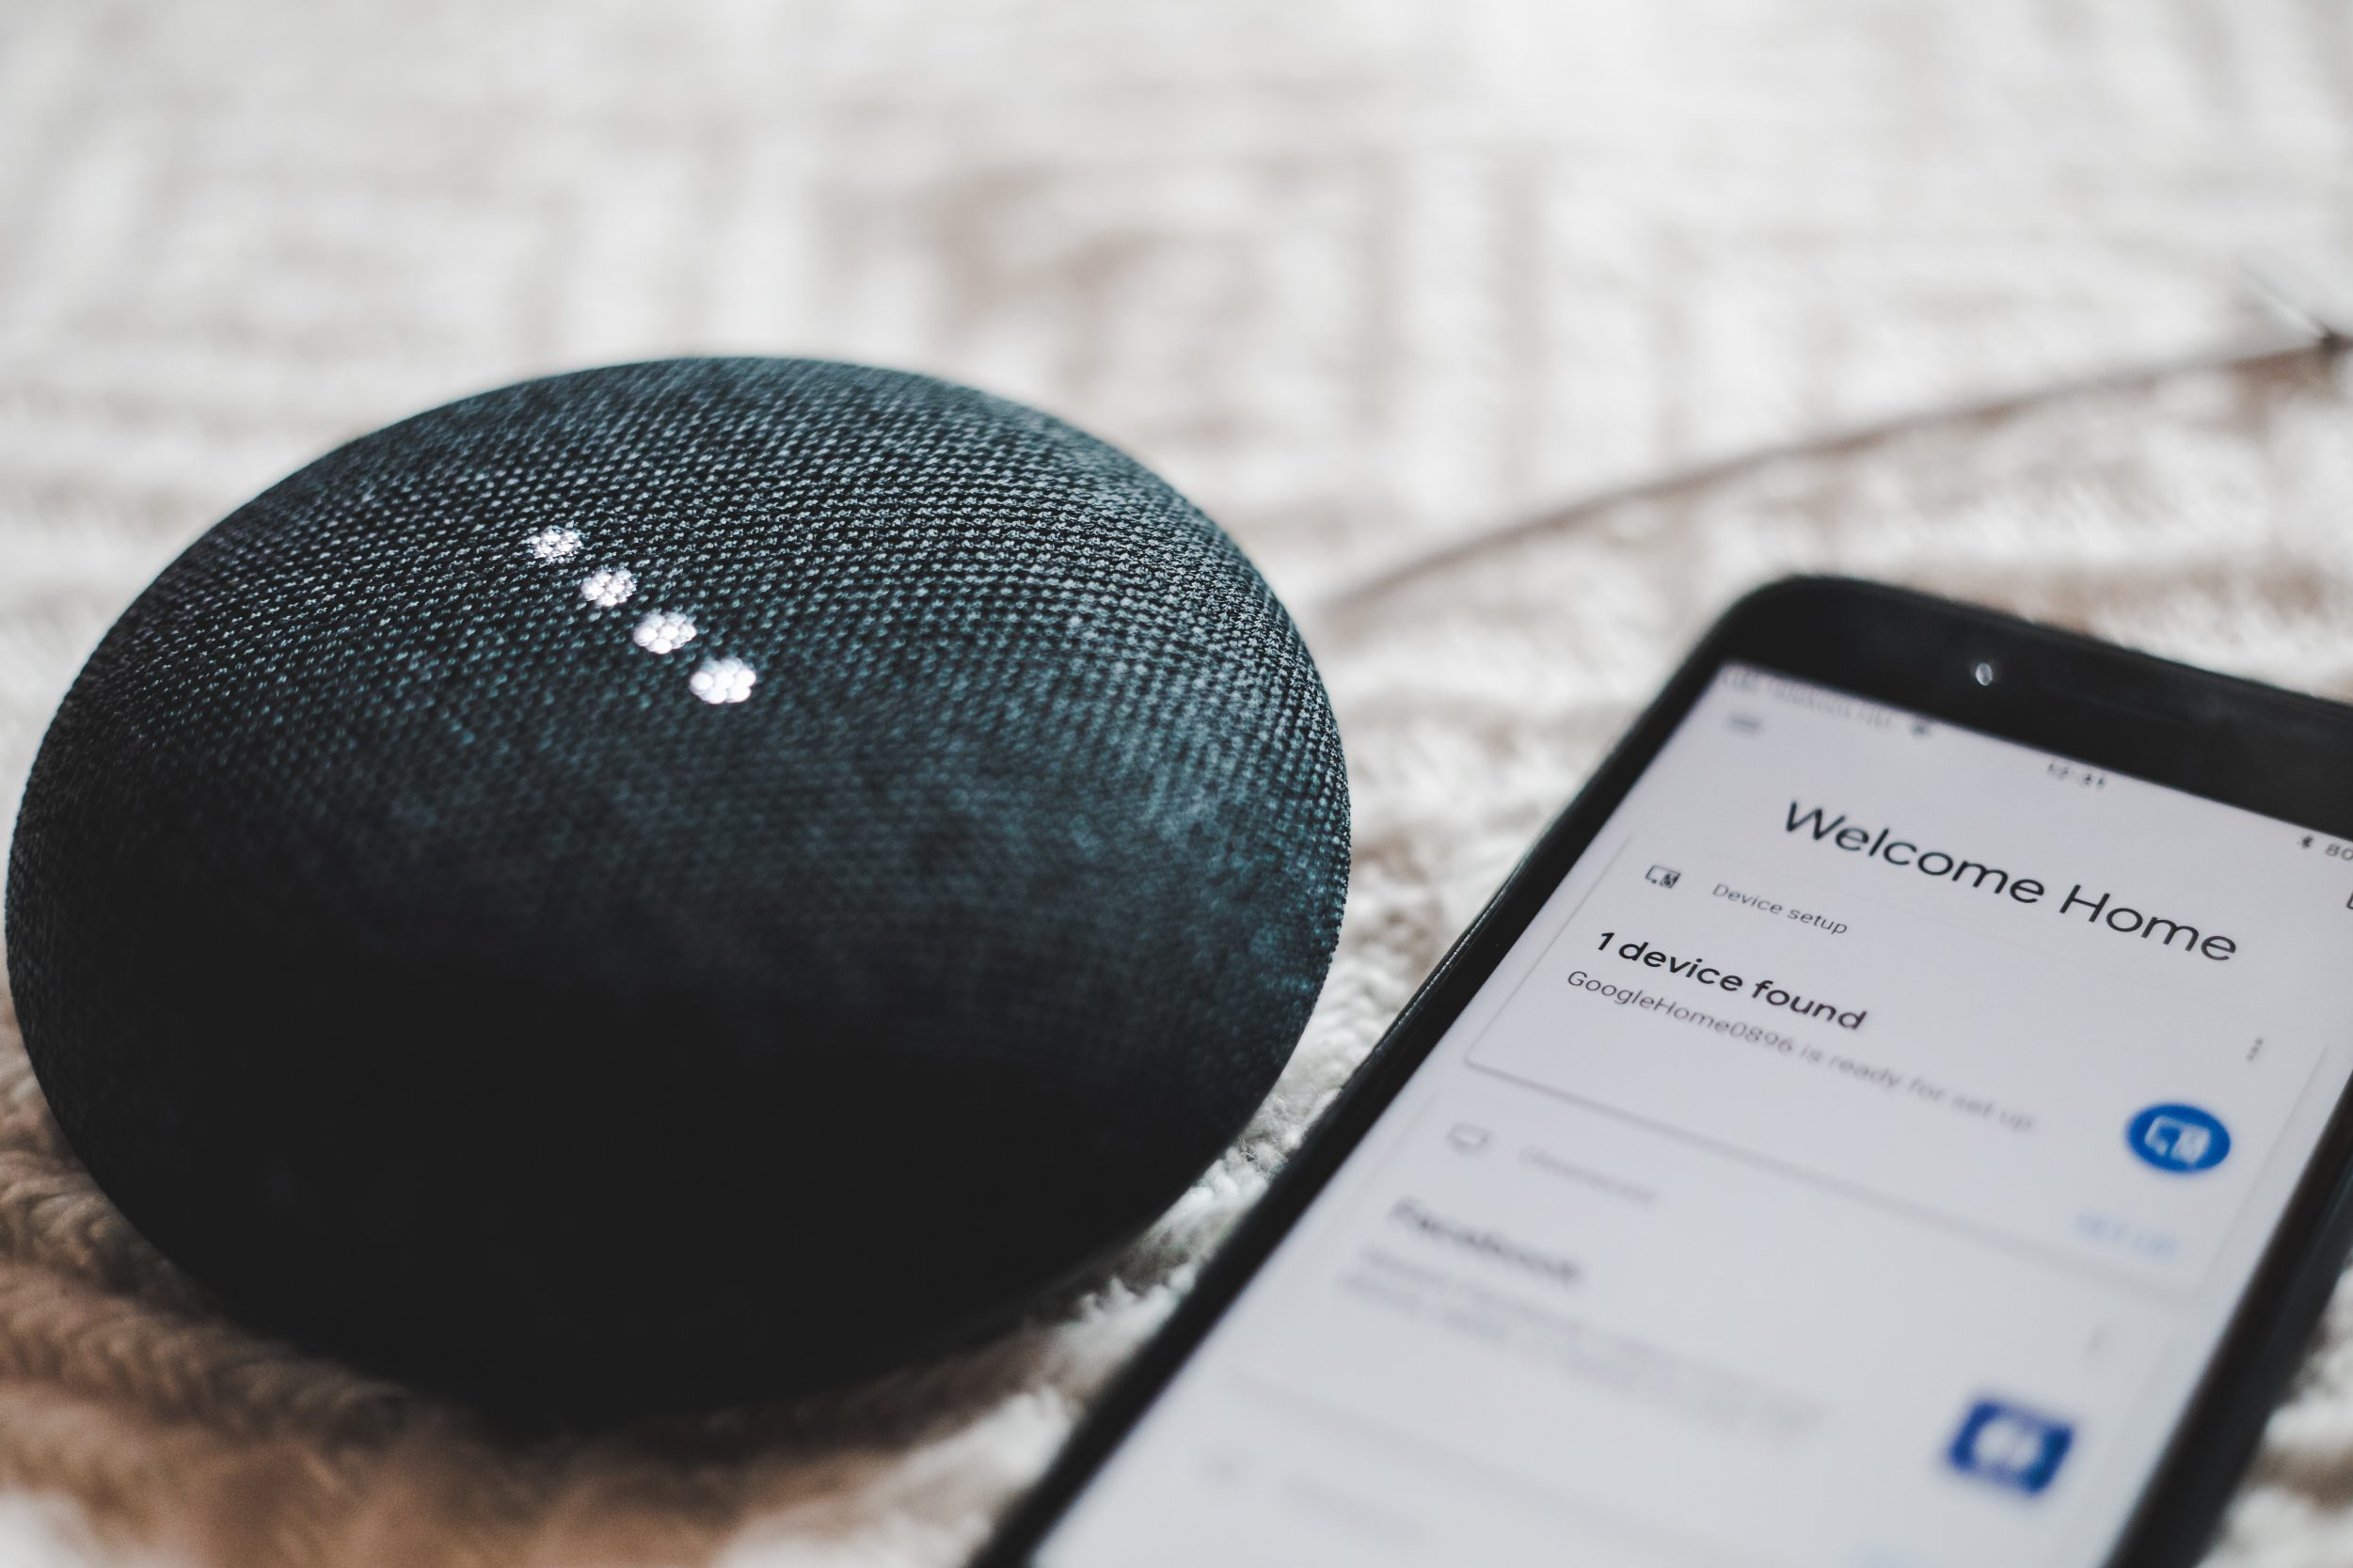 Google home mini voice assistant device next to an Android phone